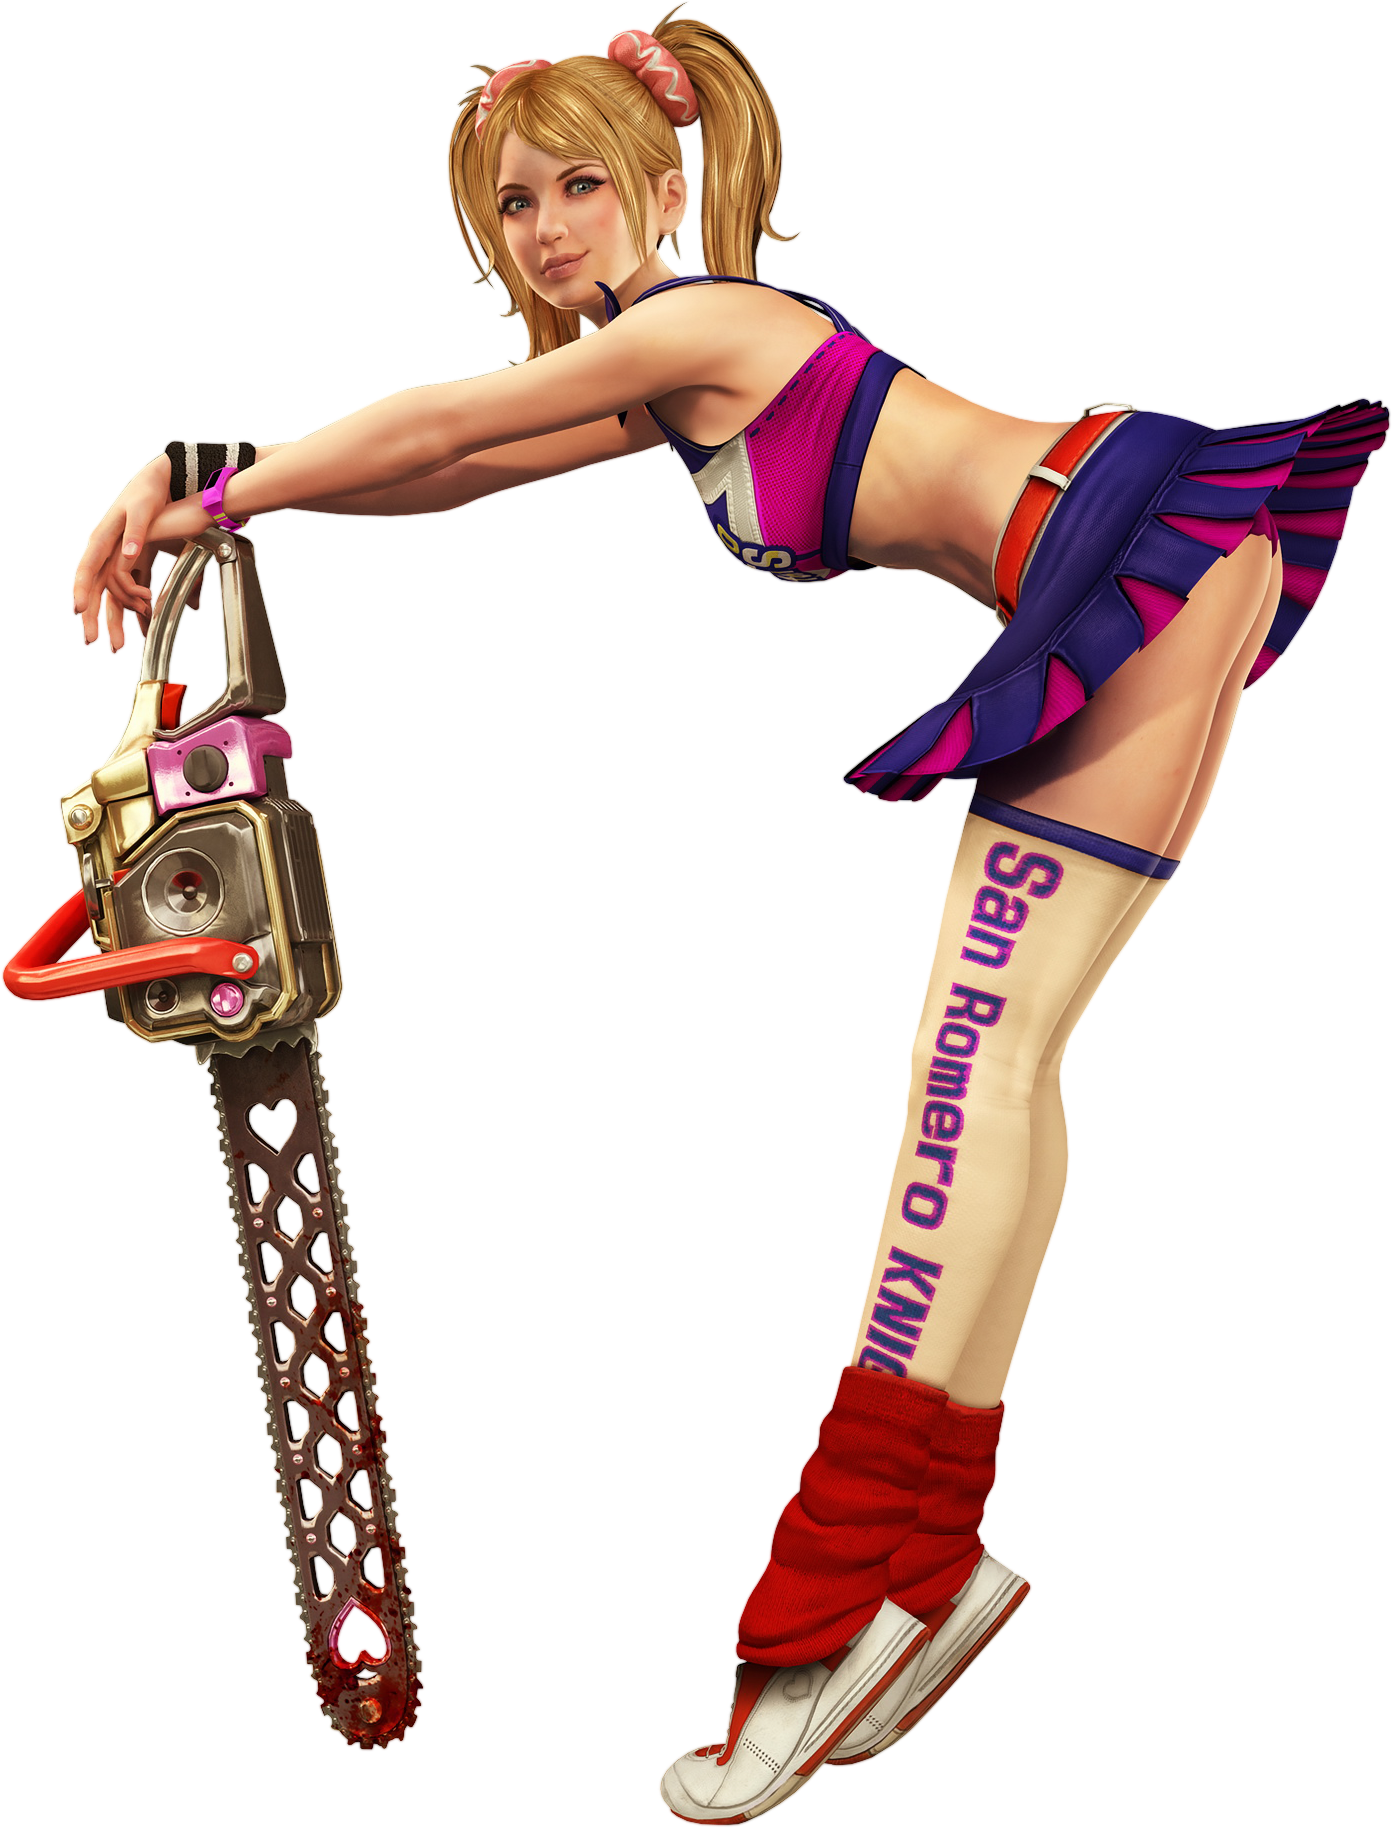 Image lollipop chainsaw juliet starling by ivances d5j52czg lollipop chainsaw juliet starling by ivances d5j52czg voltagebd Image collections